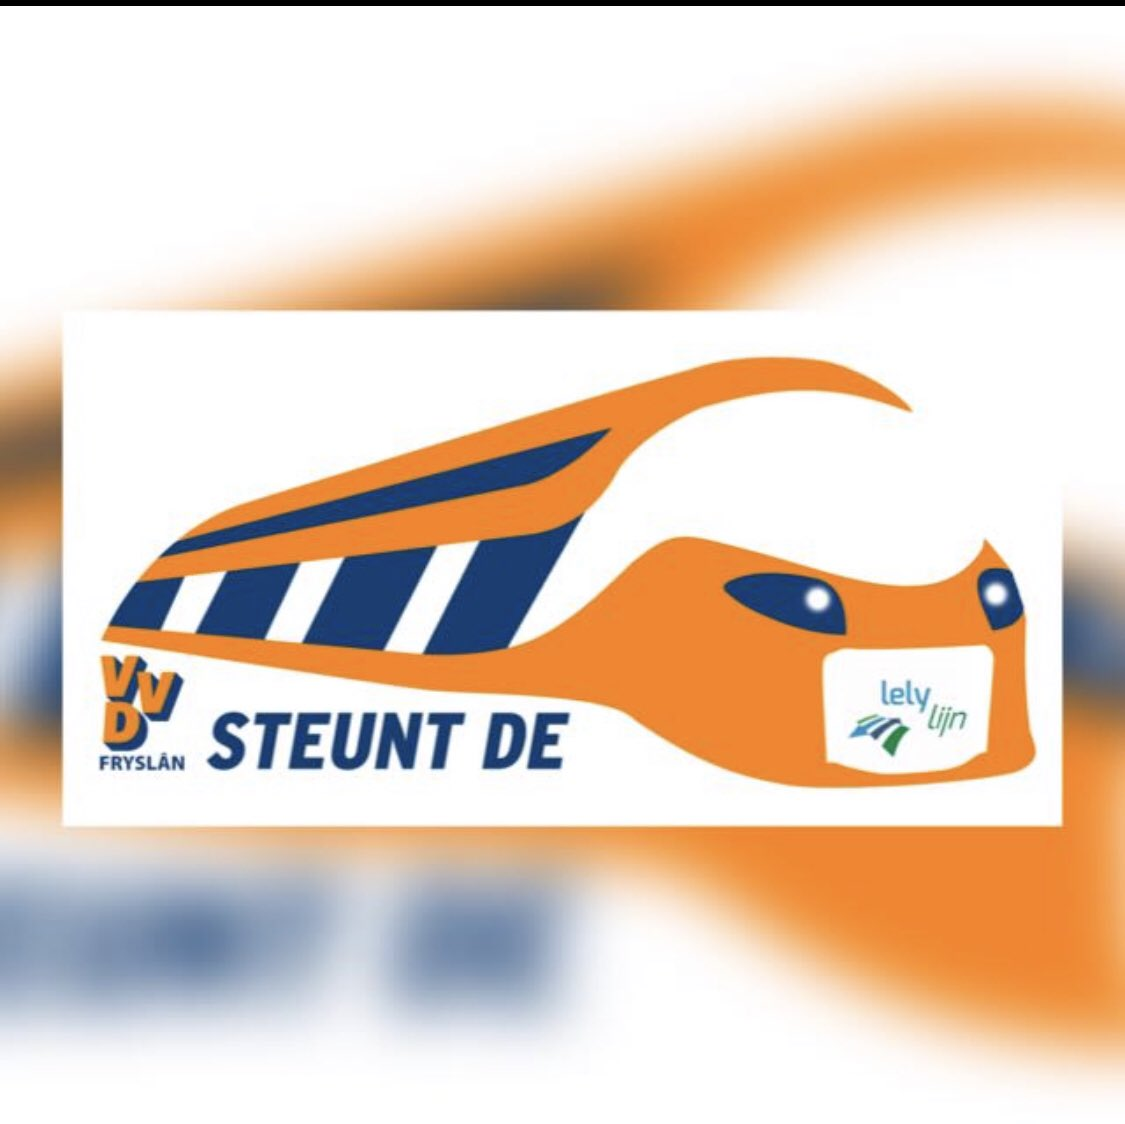 @VVDFryslan steunt de @lelylijn! All aboard! https://t.co/oqbOA5sr6j